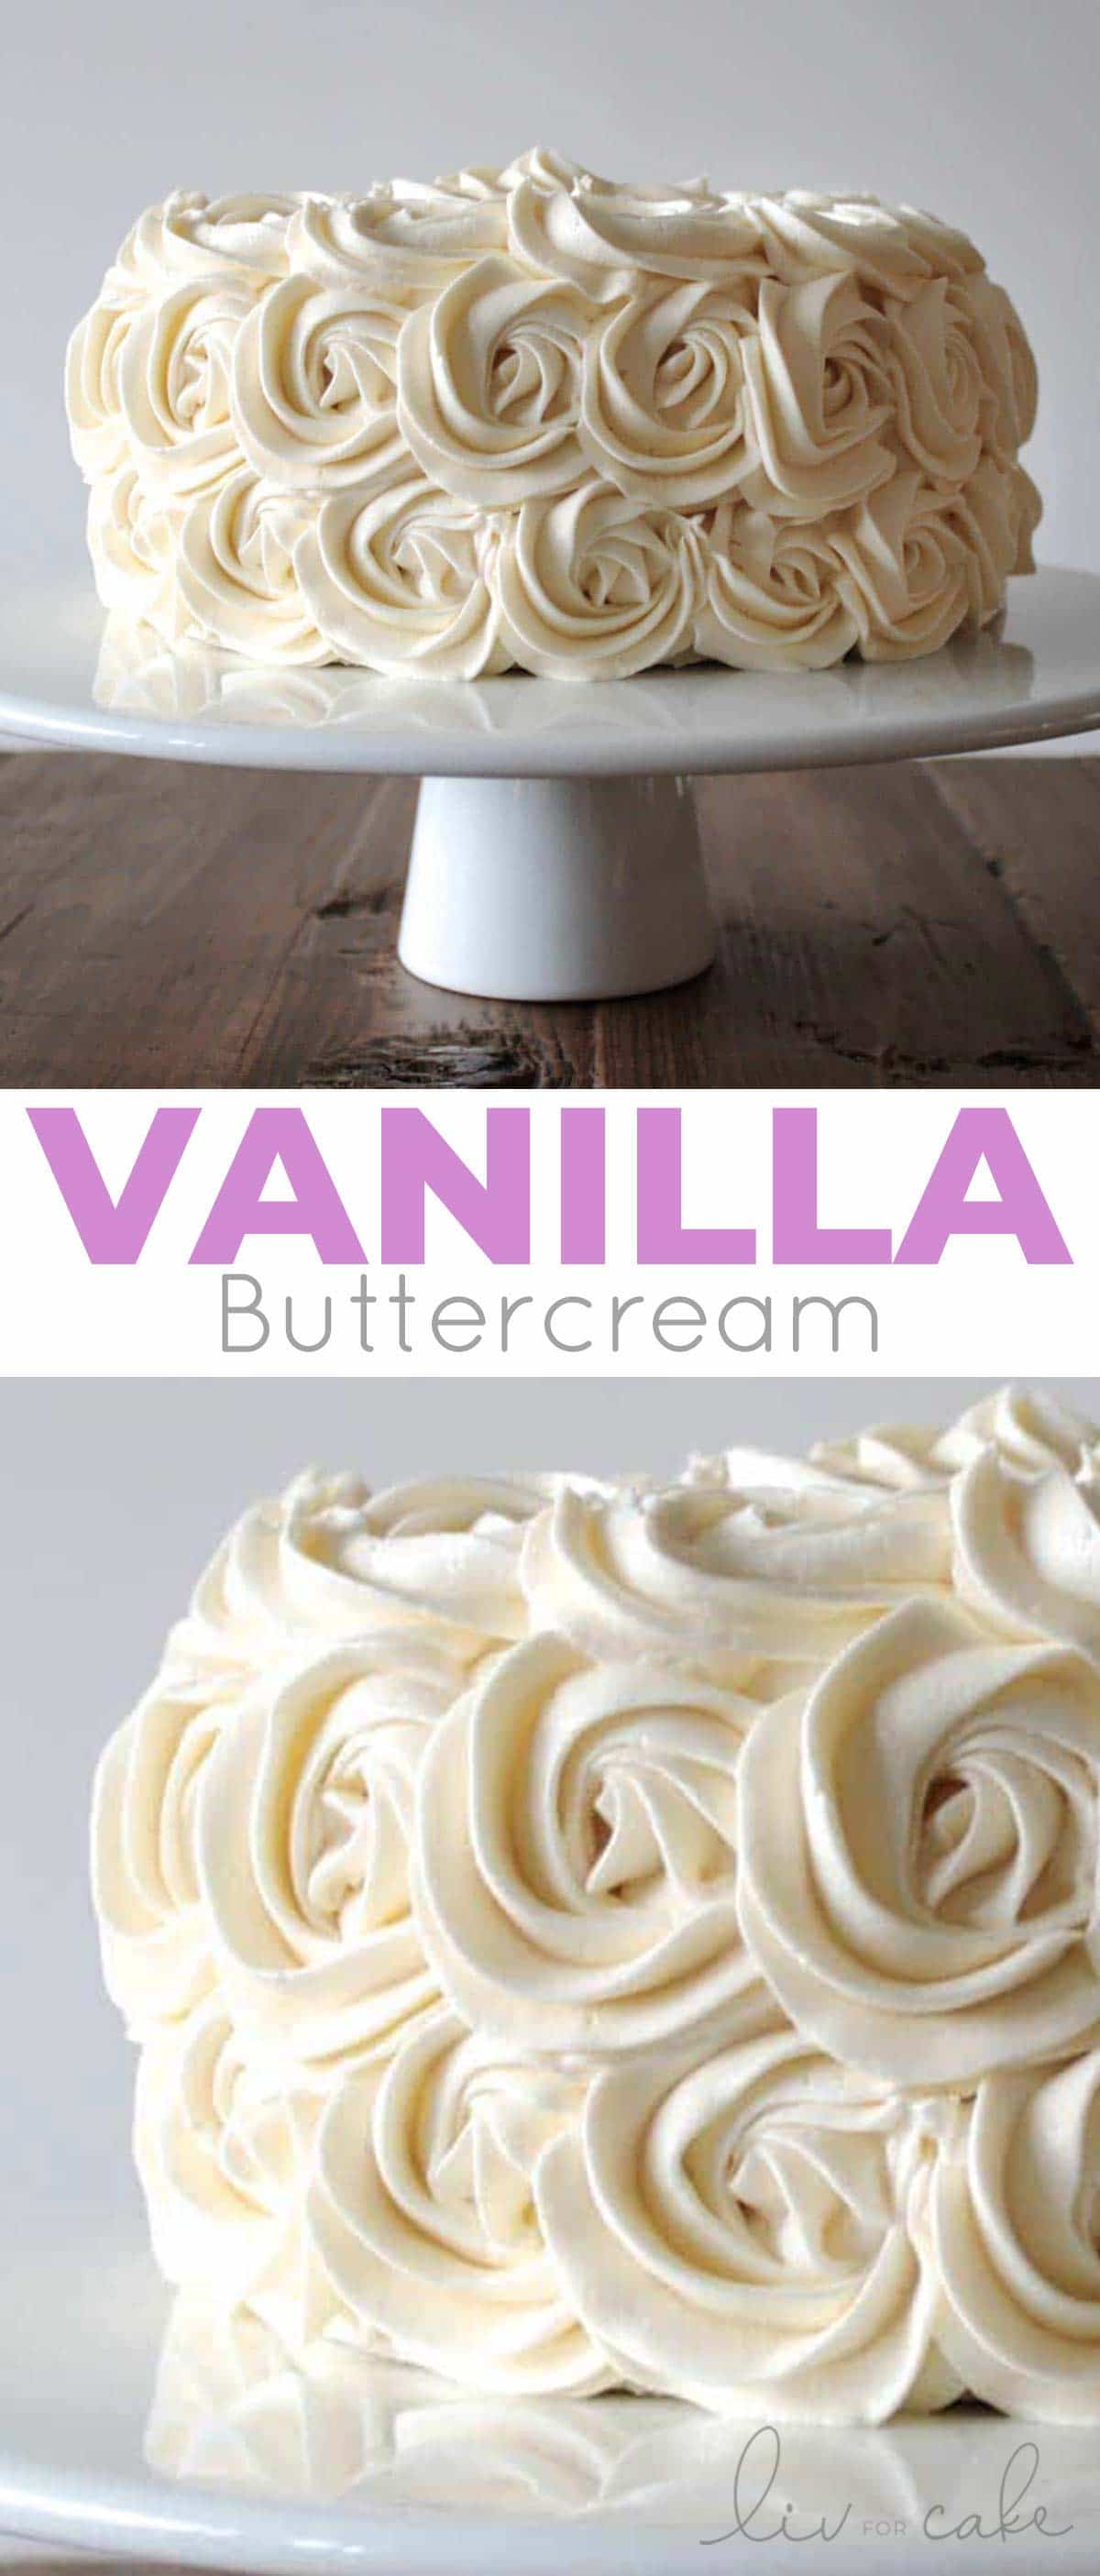 Vanilla buttercream photo collage